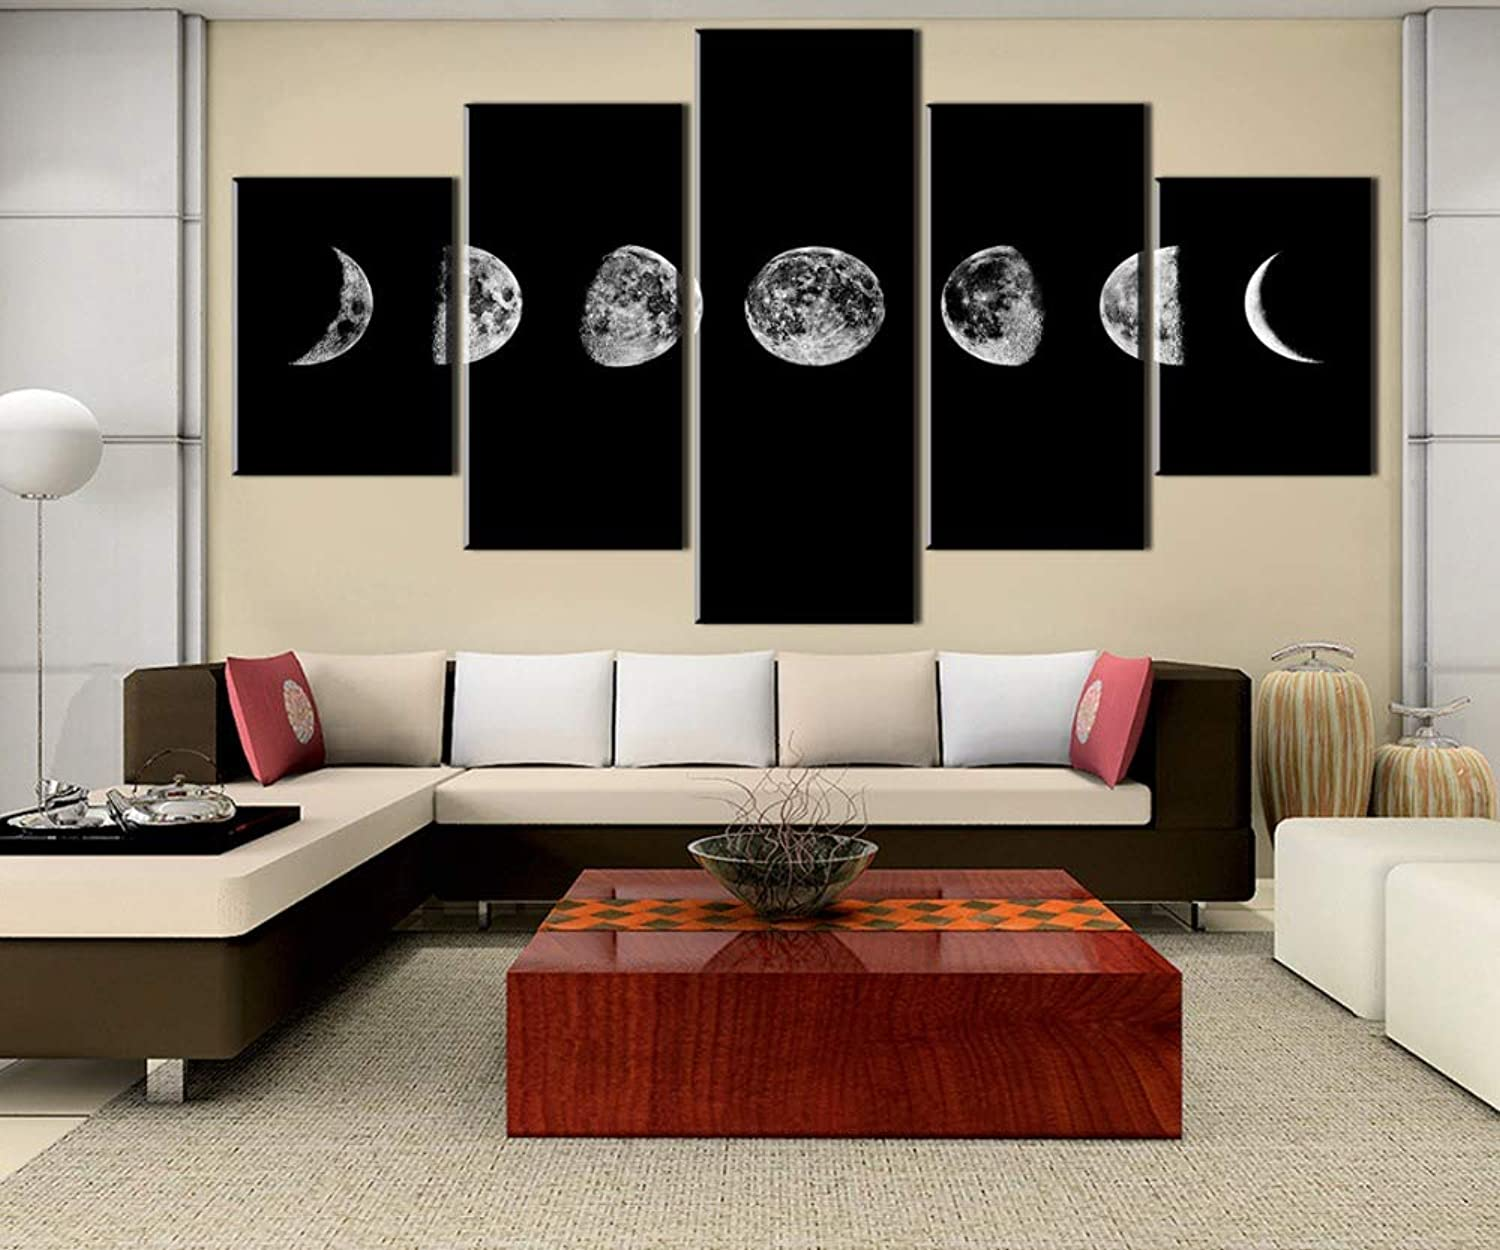 LONLLHB Painting Framed 5 Piece Canvas Art Moon Changes Paintings On Canvas Wall Art for Home Decorations Wall Decor Artwork